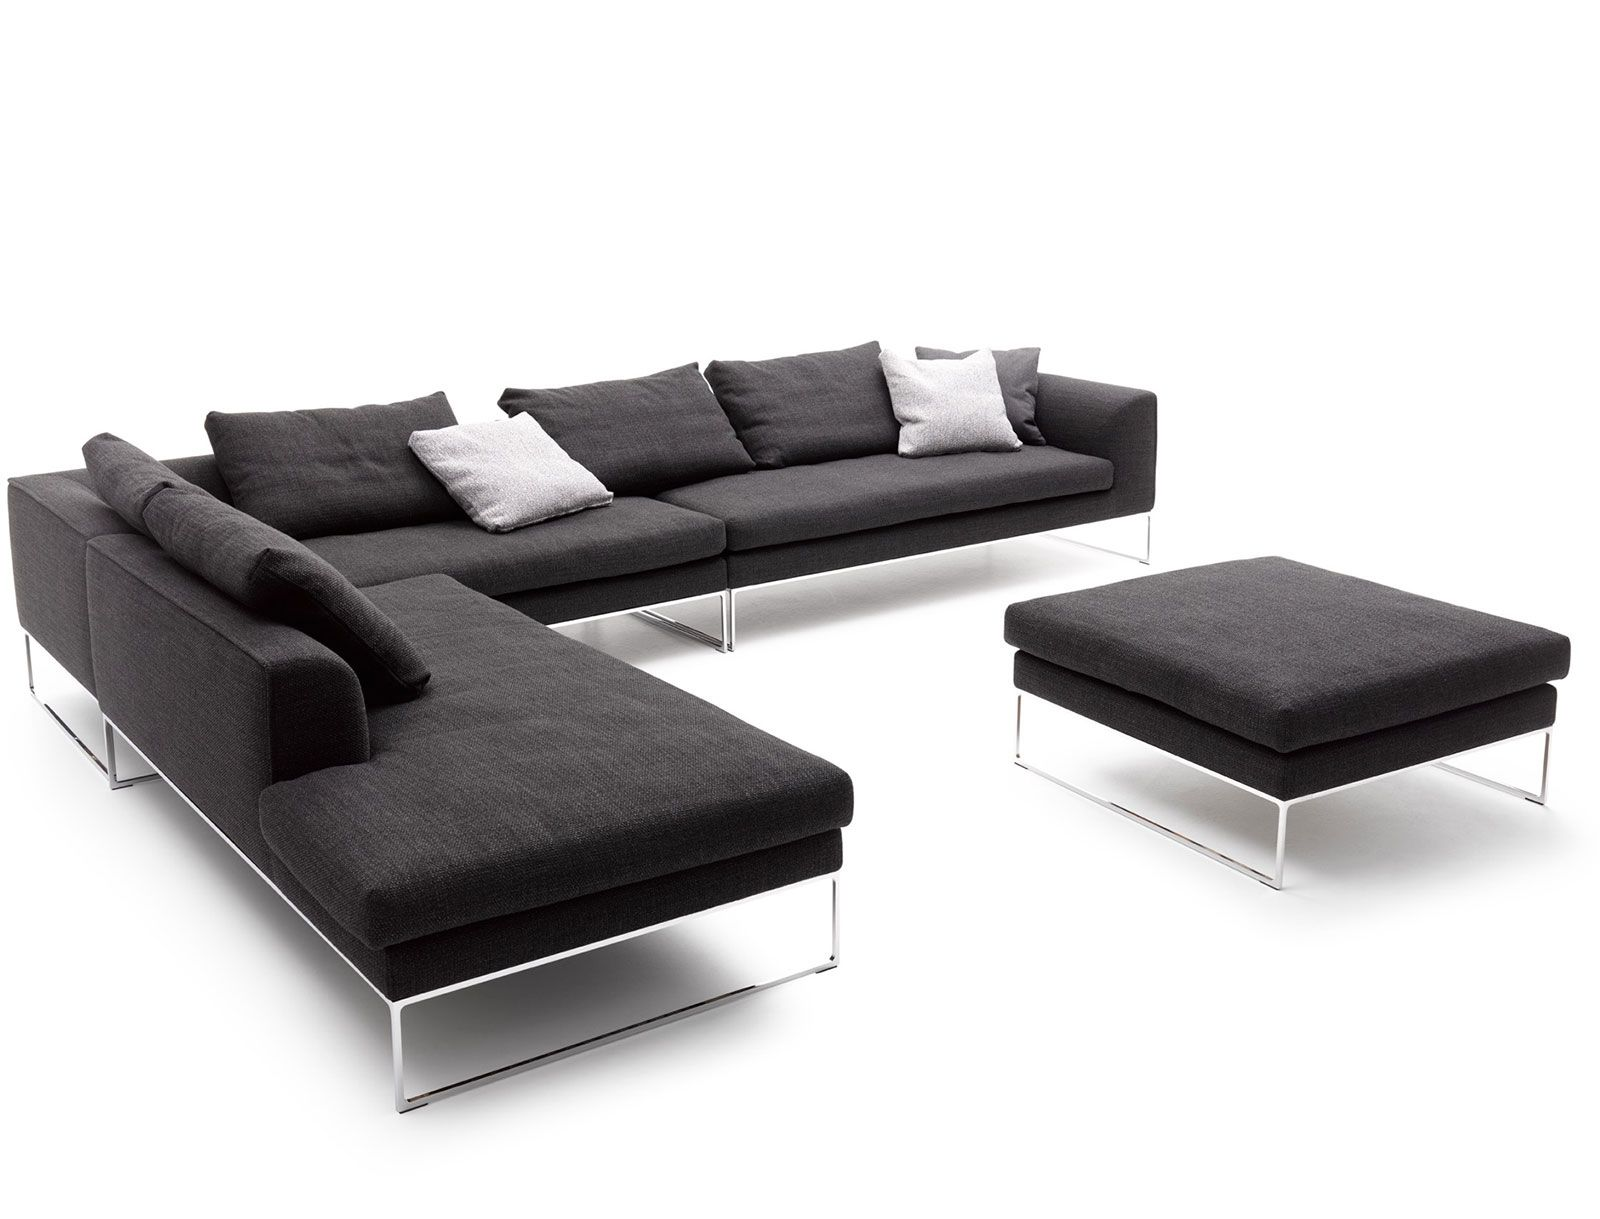 Mell Lounge Sofa COR 151 Pinterest